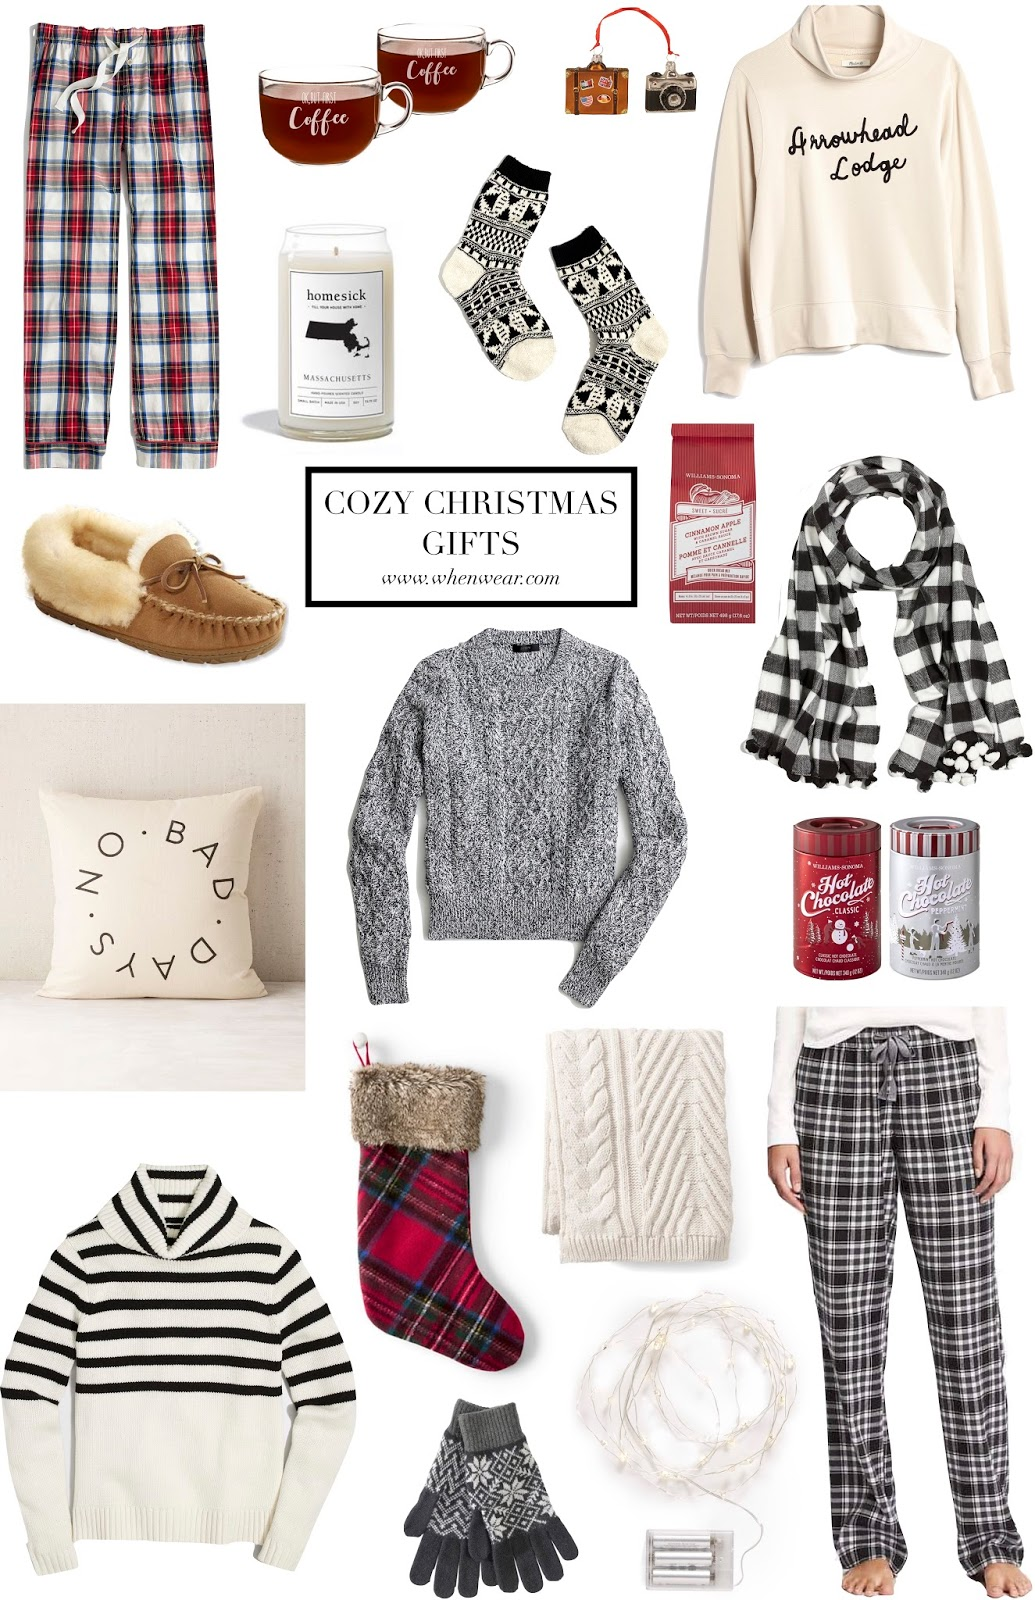 Cozy Christmas Gifts • When & Wear